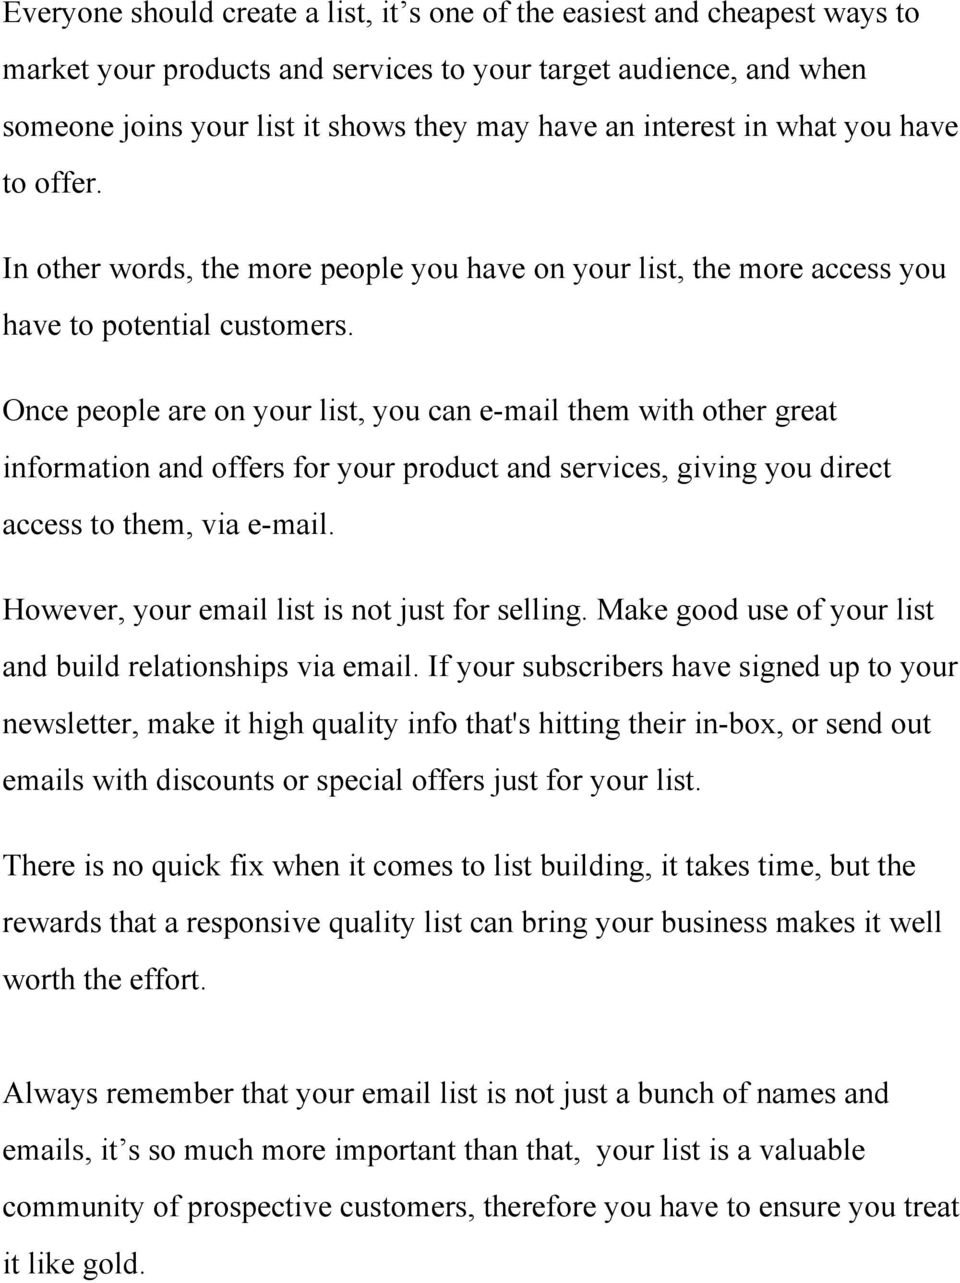 Once people are on your list, you can e mail them with other great information and offers for your product and services, giving you direct access to them, via e mail.